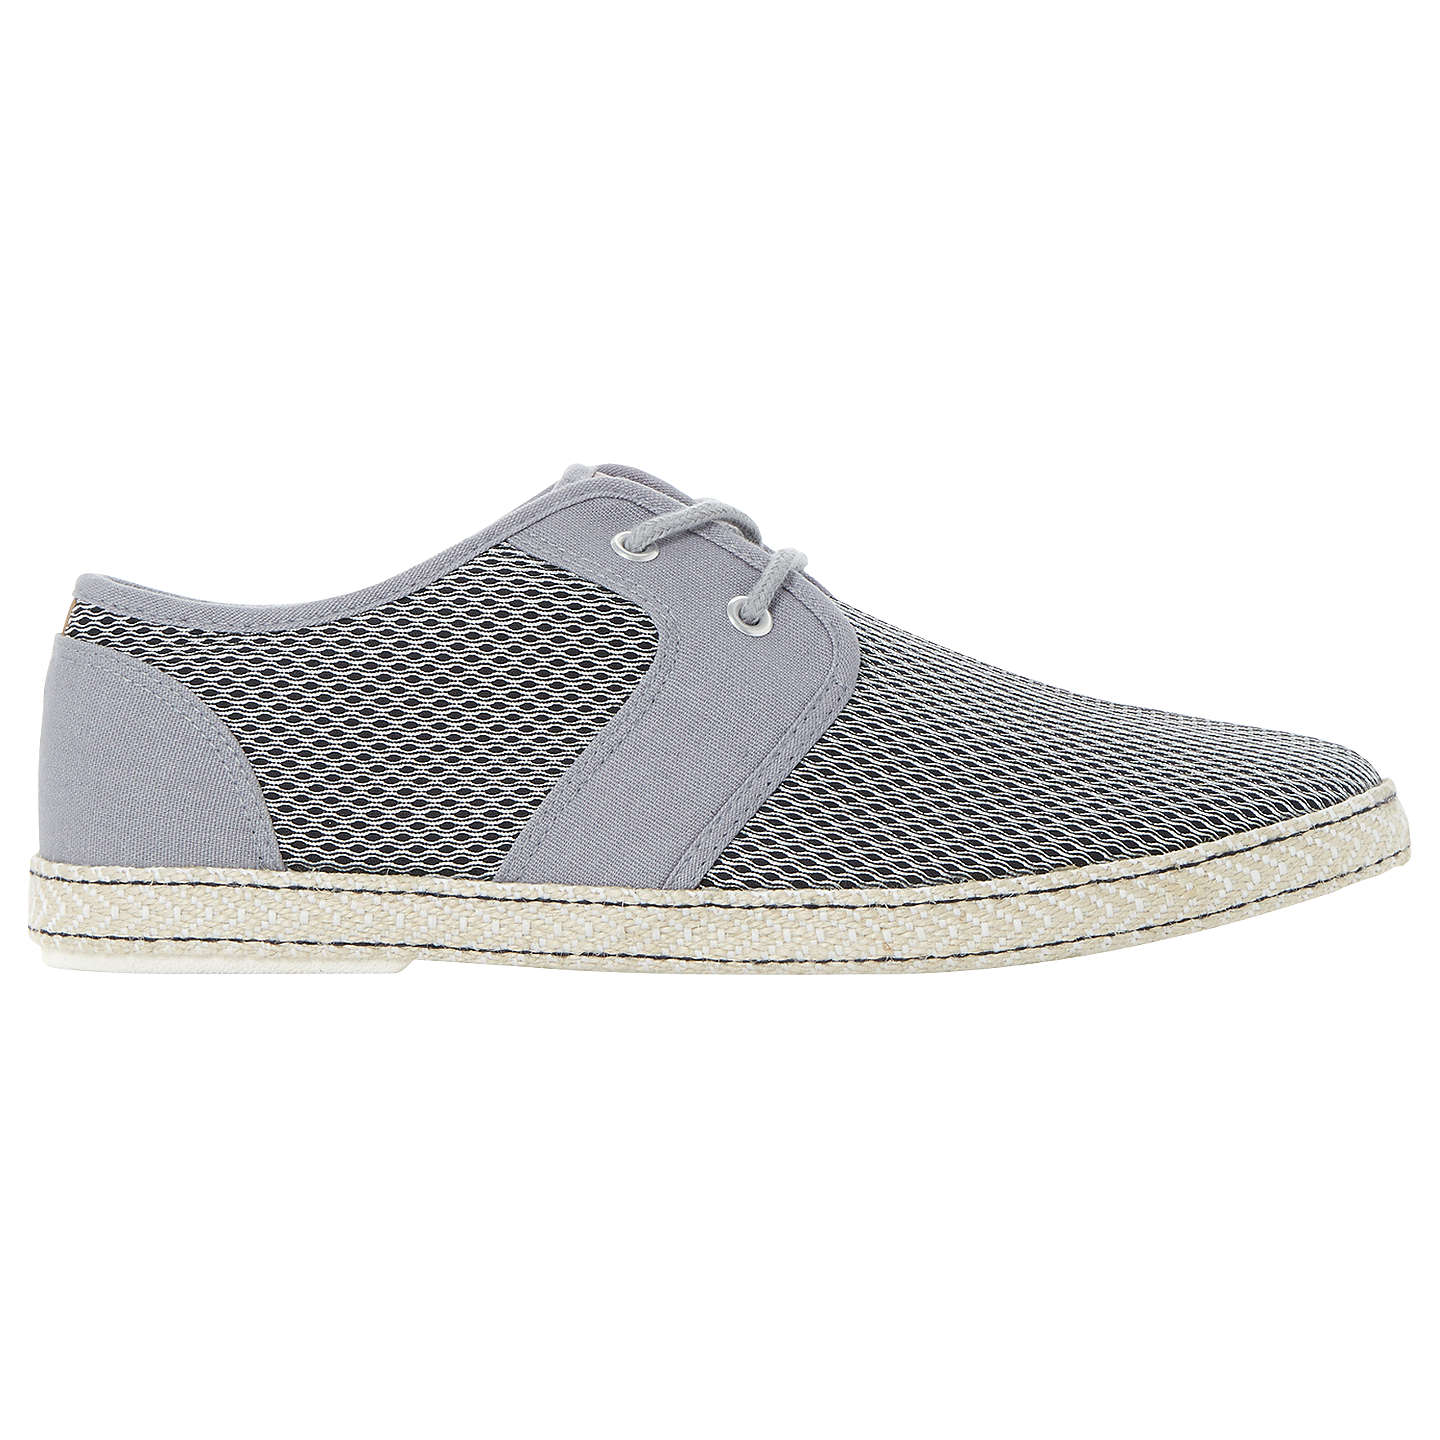 BuyDune Fennton Lace-Up Shoes, Grey, 7 Online at johnlewis.com